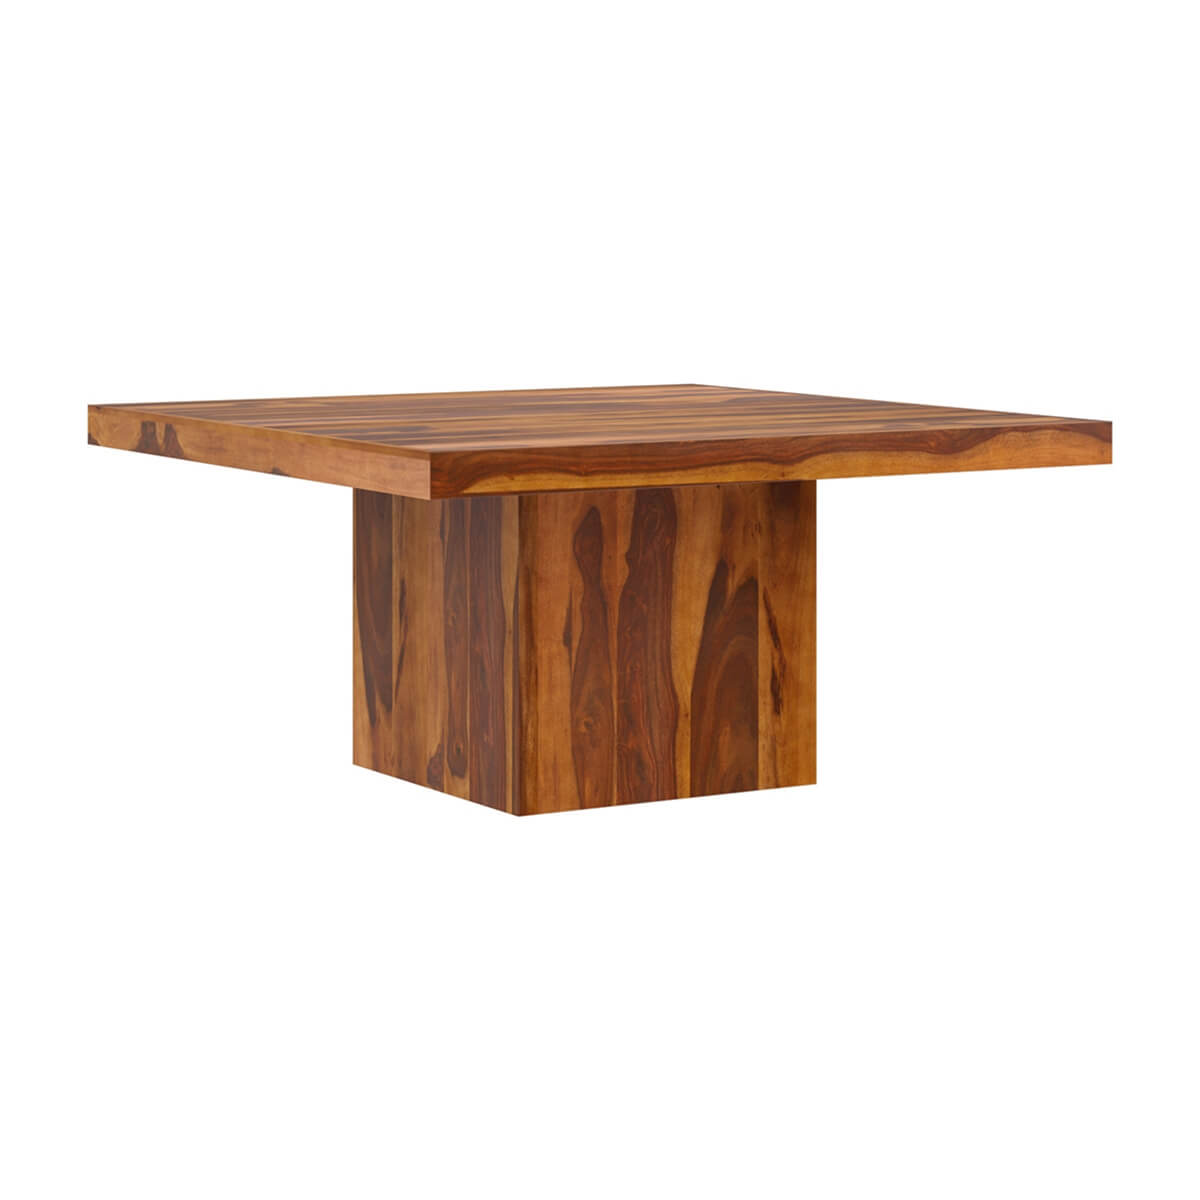 Solid Wood Modern Rustic Block Pedestal Square Dining Table For 8